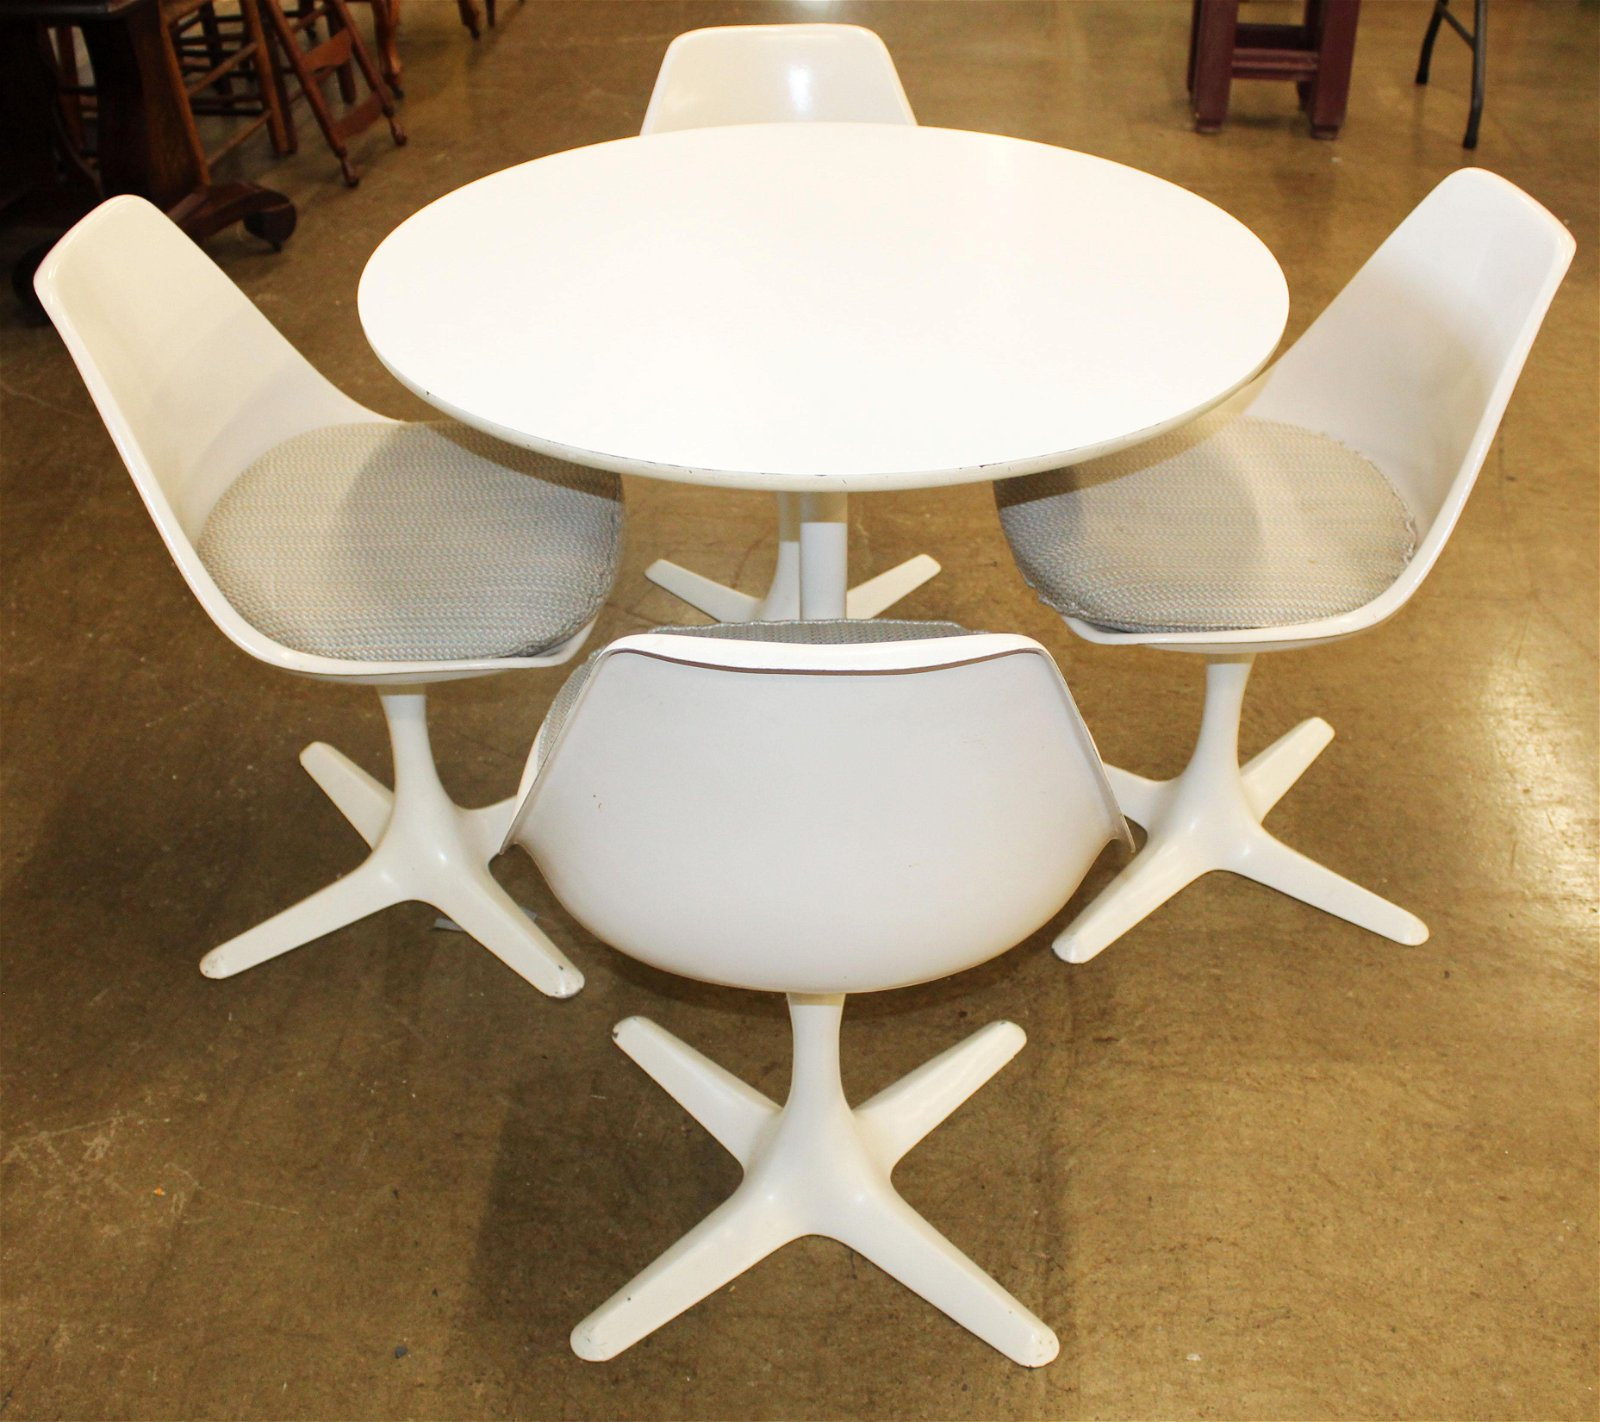 Knoll Saarinen tulip dining table and 4 chairs